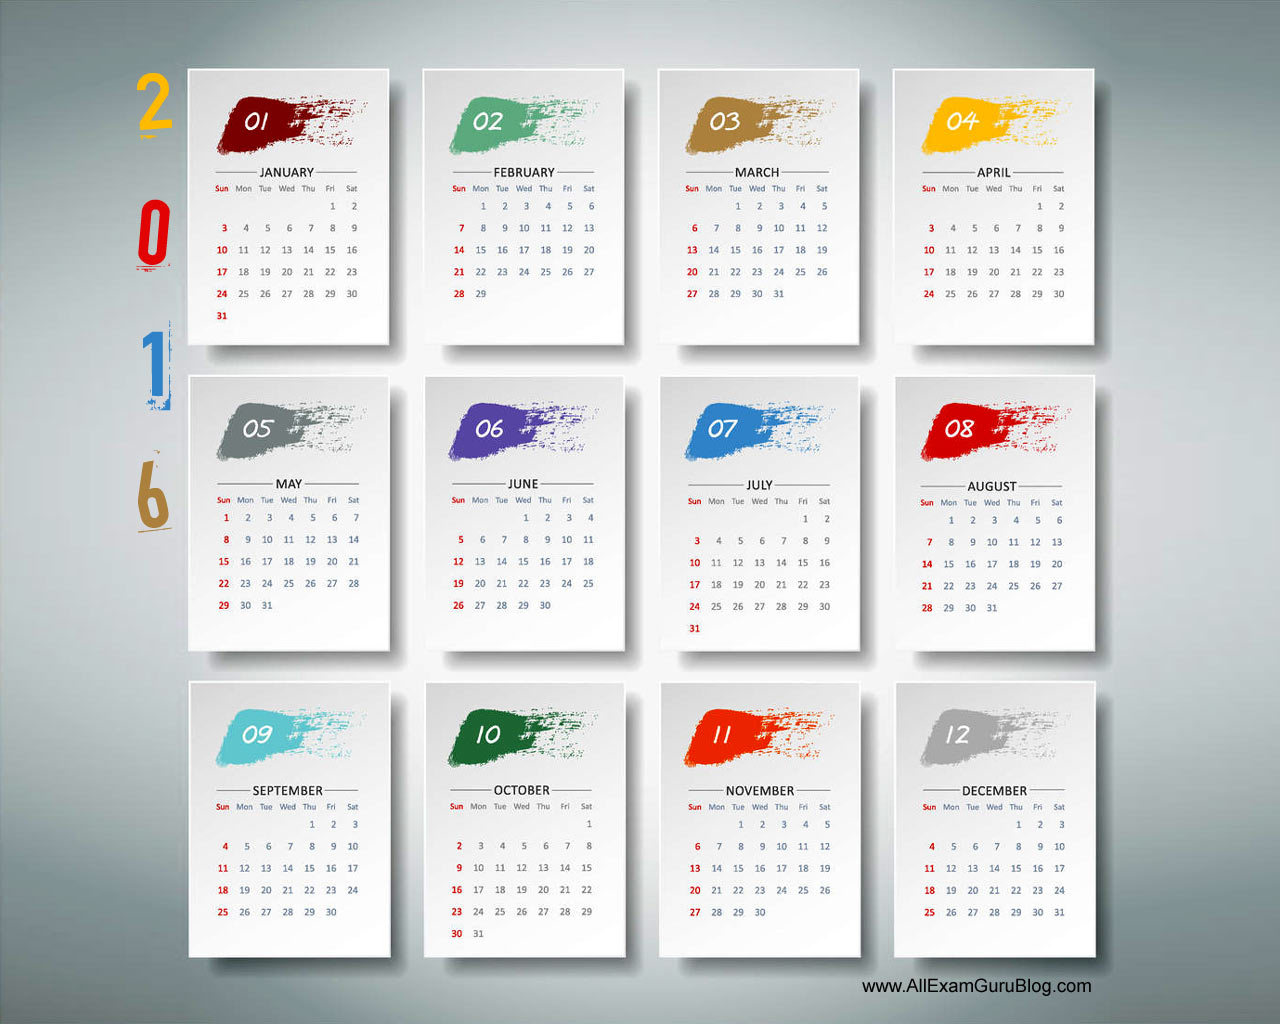 2016 calendardesktop wallpaper calendar 2016 download